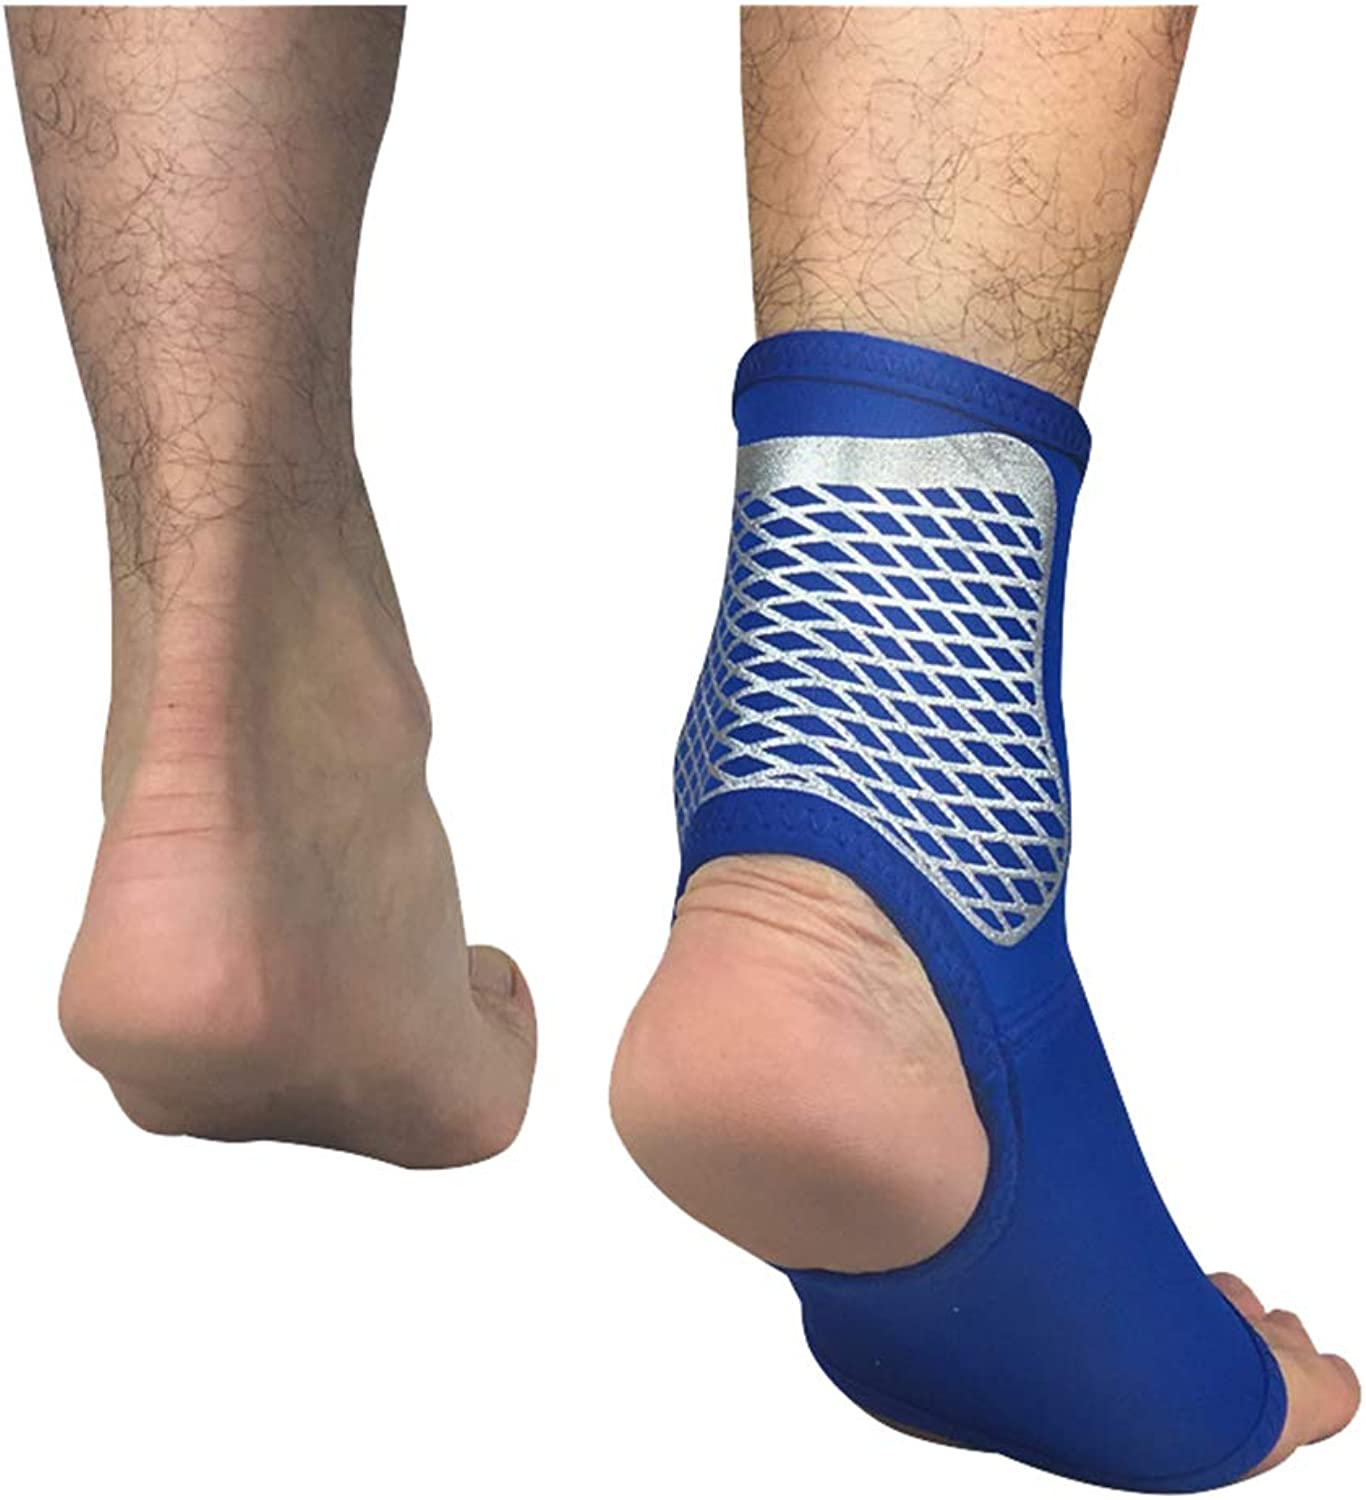 Ankle Stabilizer,Ankle Support Brace  Boost Your Recovery & Confidence  Best for Arthritis,Tendonitis and Sports Sprain Recovery